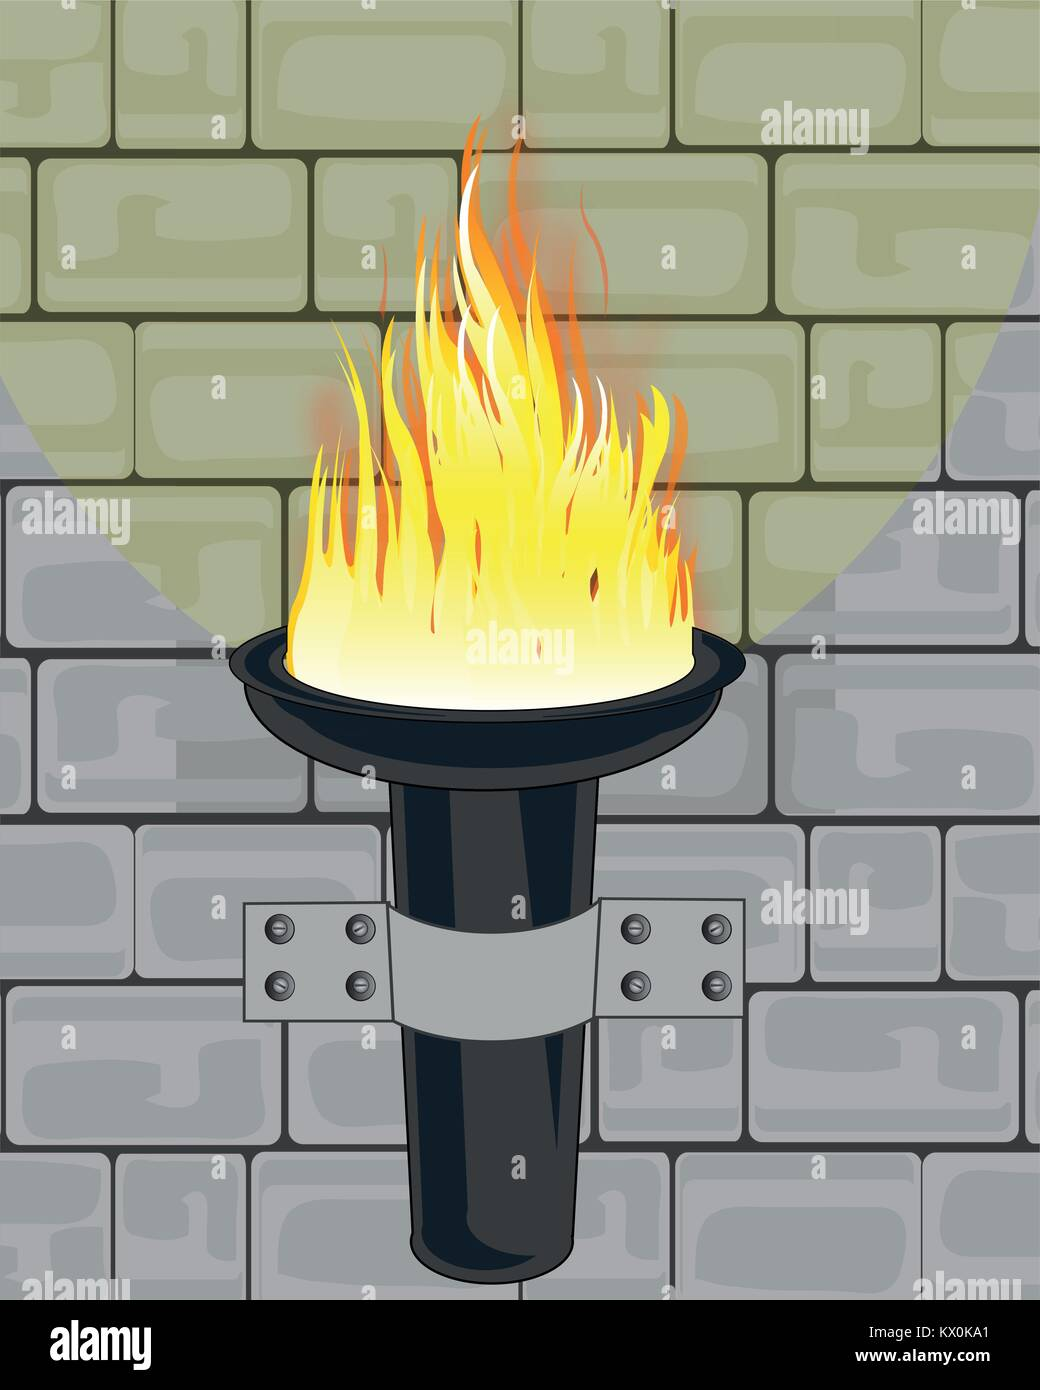 Torchlight on wall - Stock Image